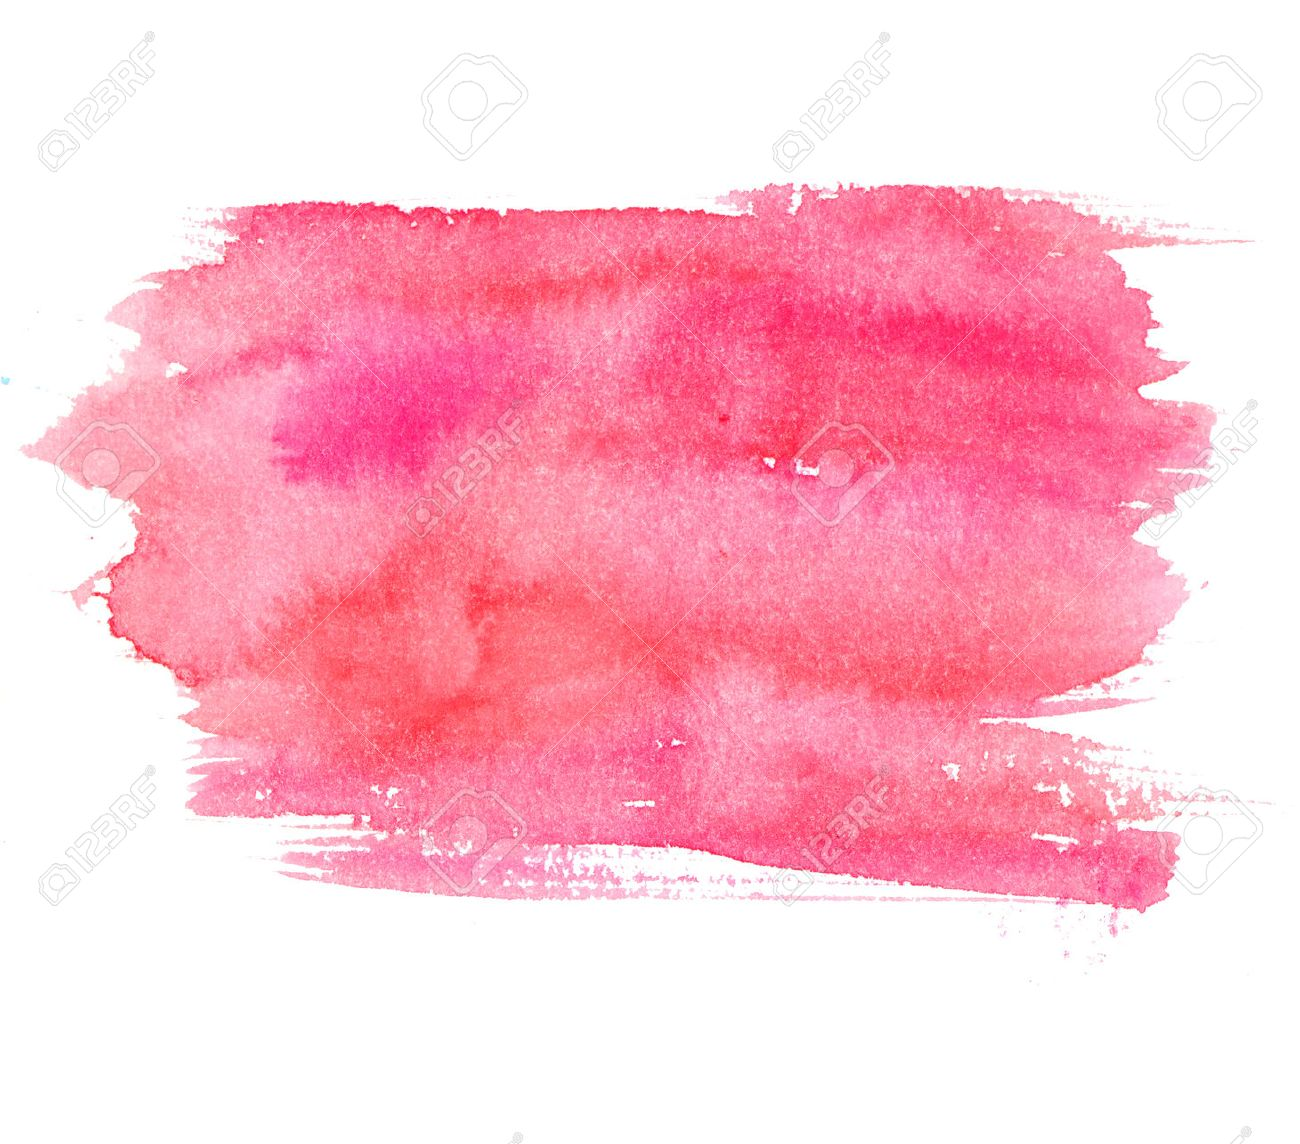 Free illustration watercolor pigment color free image - Blush On Pink Watercolor Stain Isolated On White Background Artistic Paint Texture